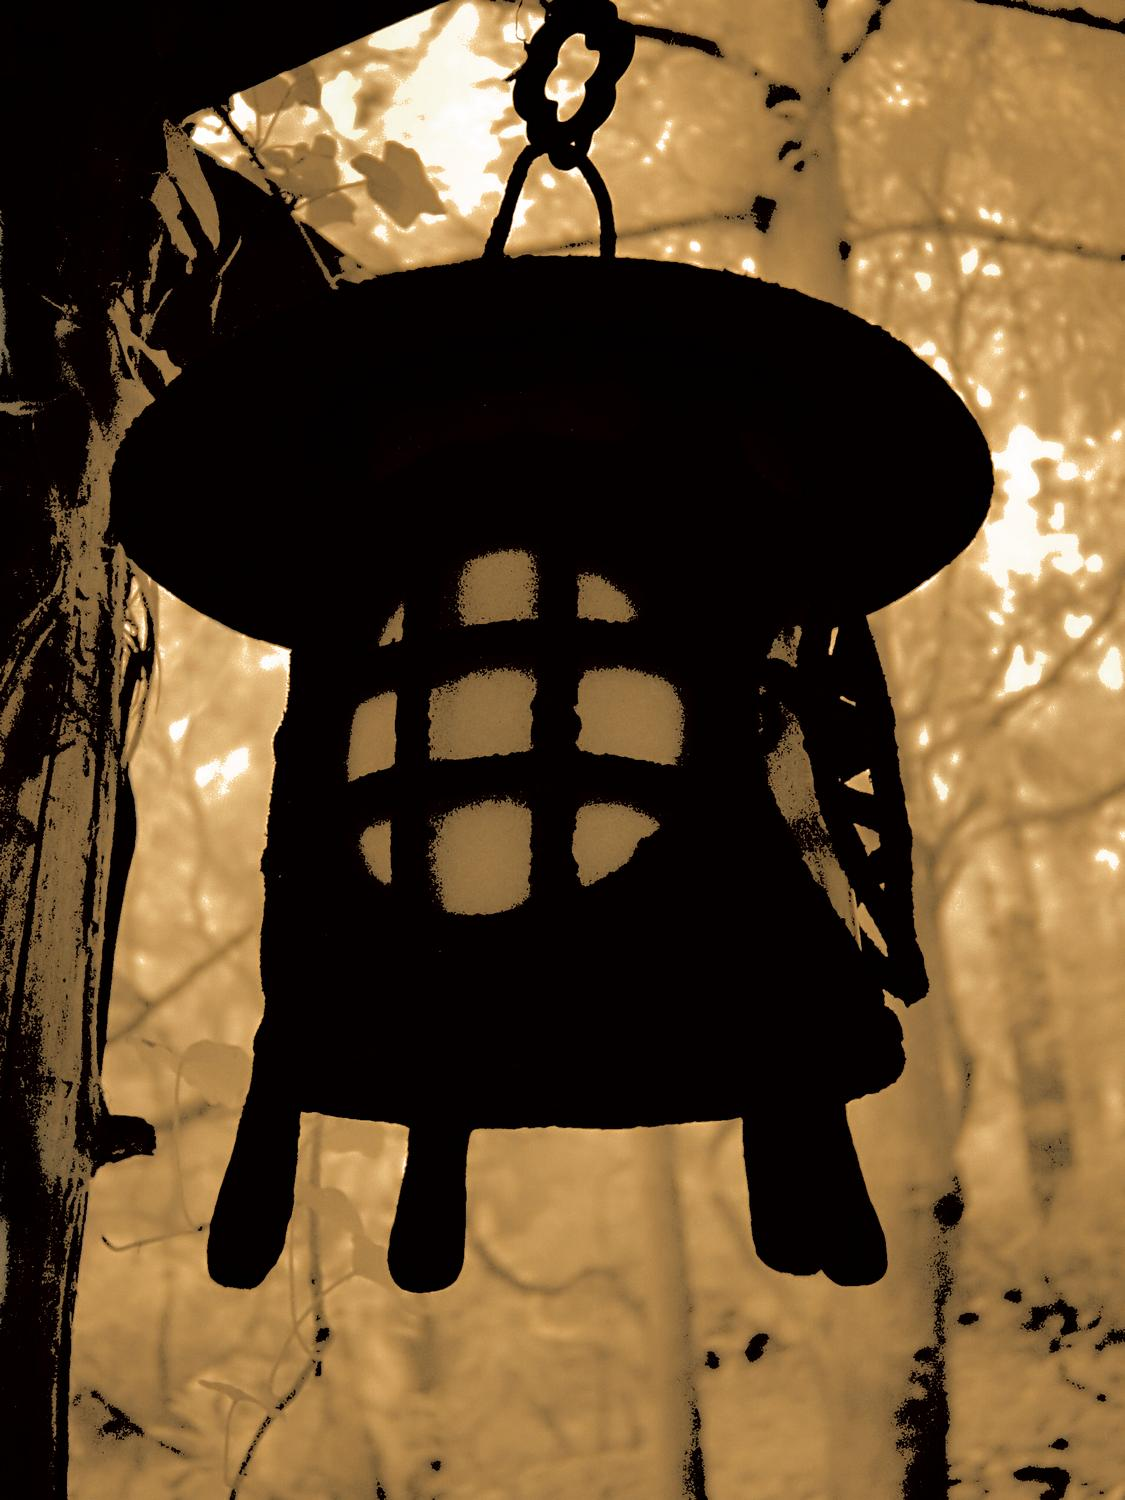 - Japanese lantern - Techno-Impressionist Museum - Techno-Impressionism - art - beautiful - photo photography picture - by Tony Karp